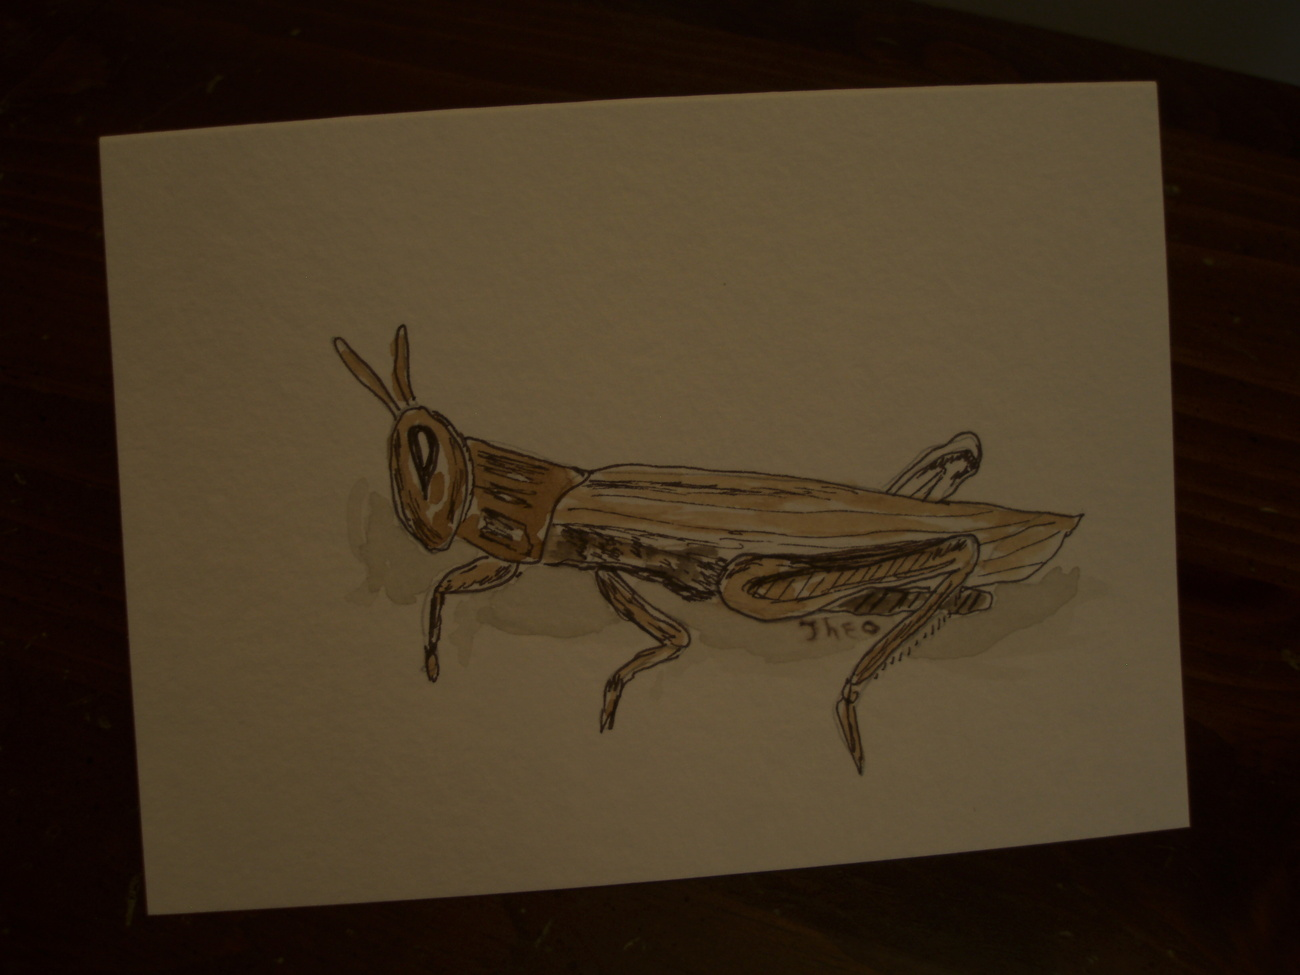 Primary image for Handpainted greeting Blank Card with grasshopper